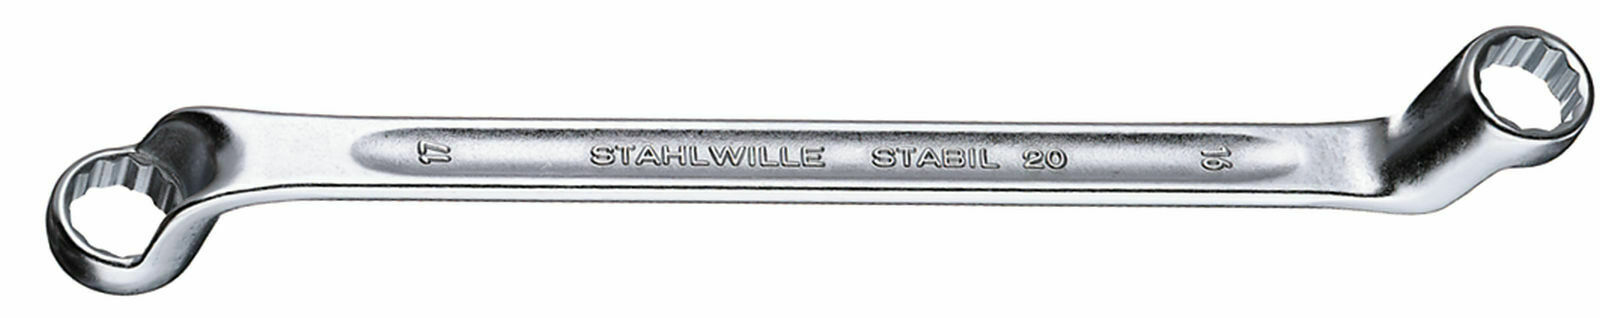 Stahlwille DOUBLE ENDED RING SPANNER 41042732